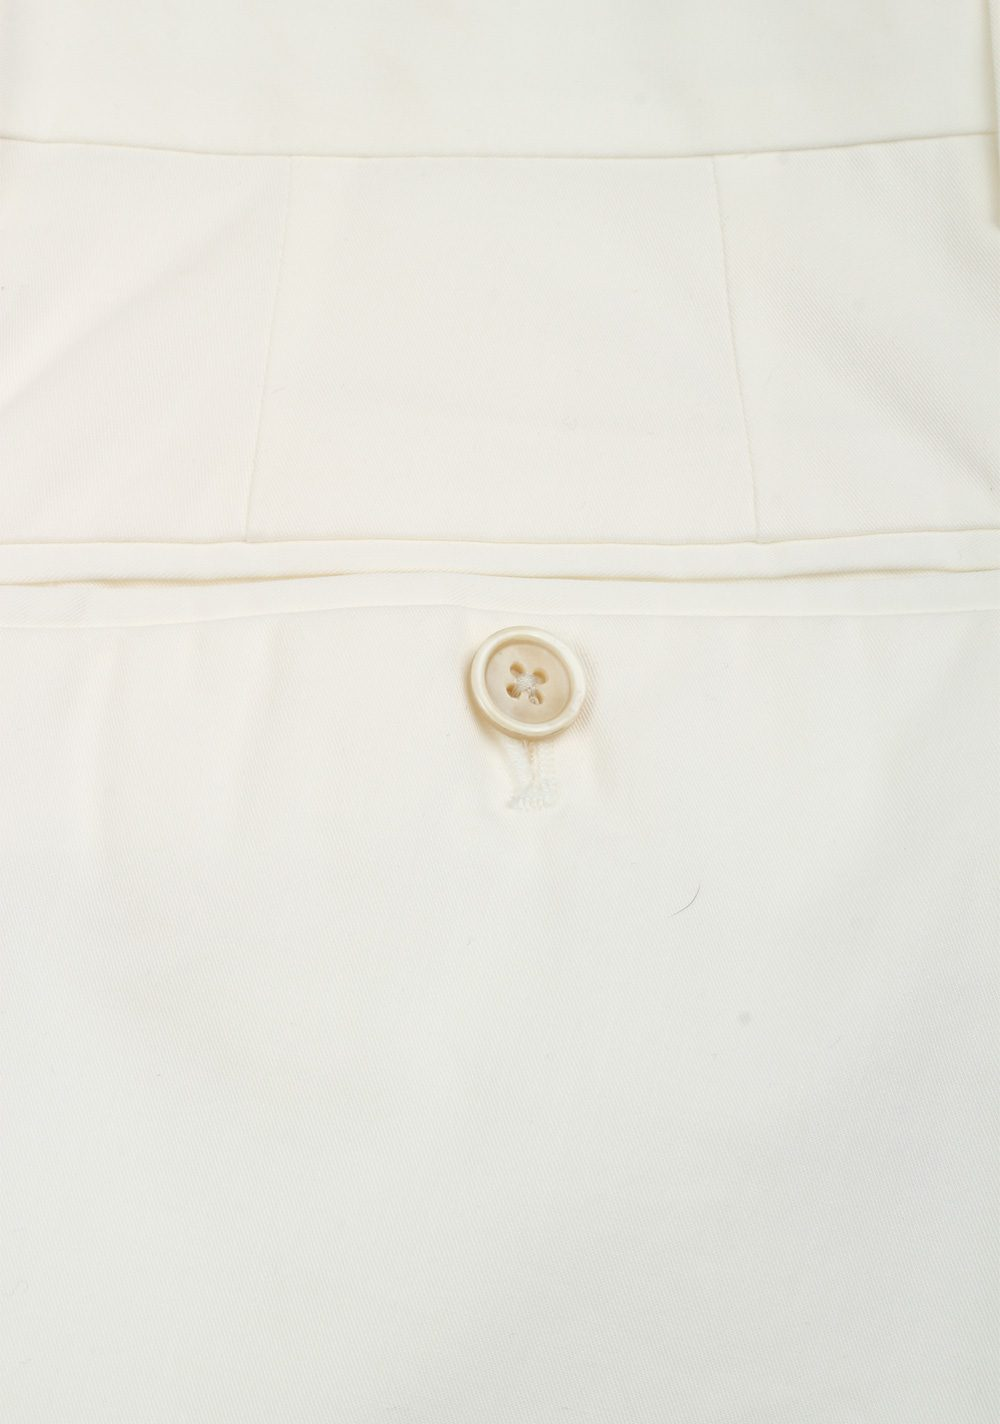 TOM FORD White Cotton Trousers Size 46 / 30 U.S. | Costume Limité